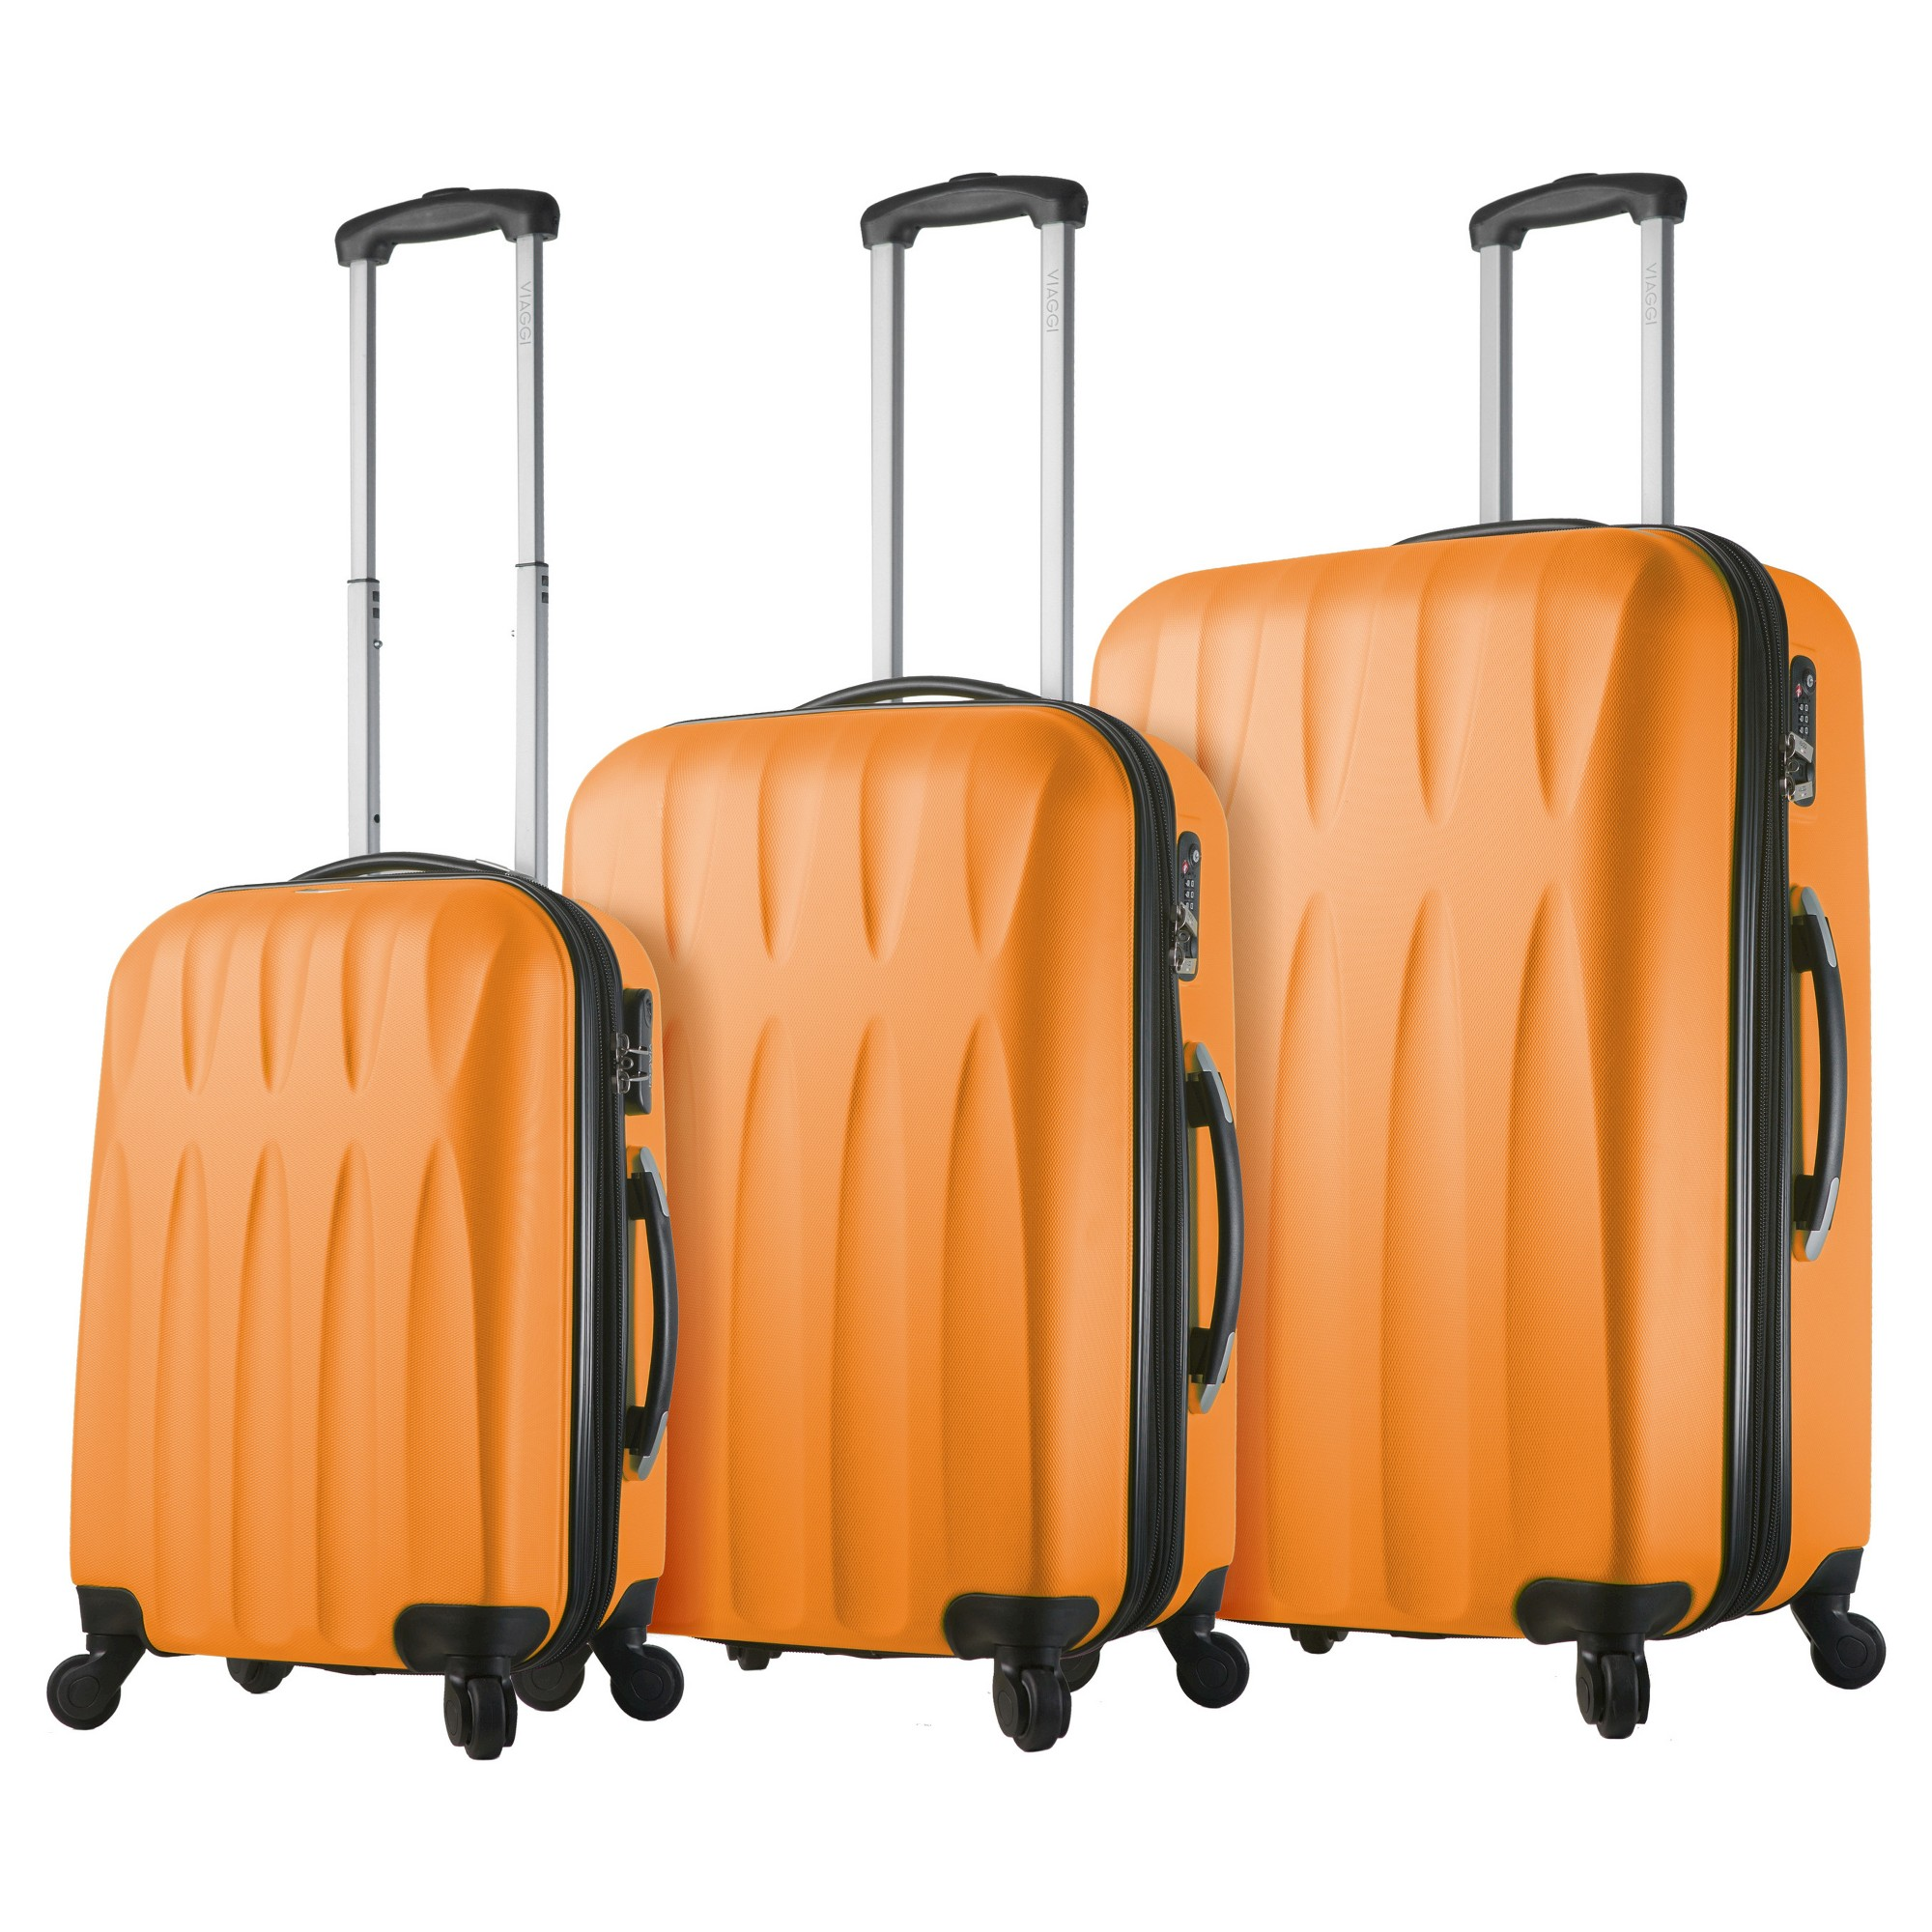 Mia Viaggi Pavia Hardside 3pc Luggage Set Bubble Gum Bubble Gum